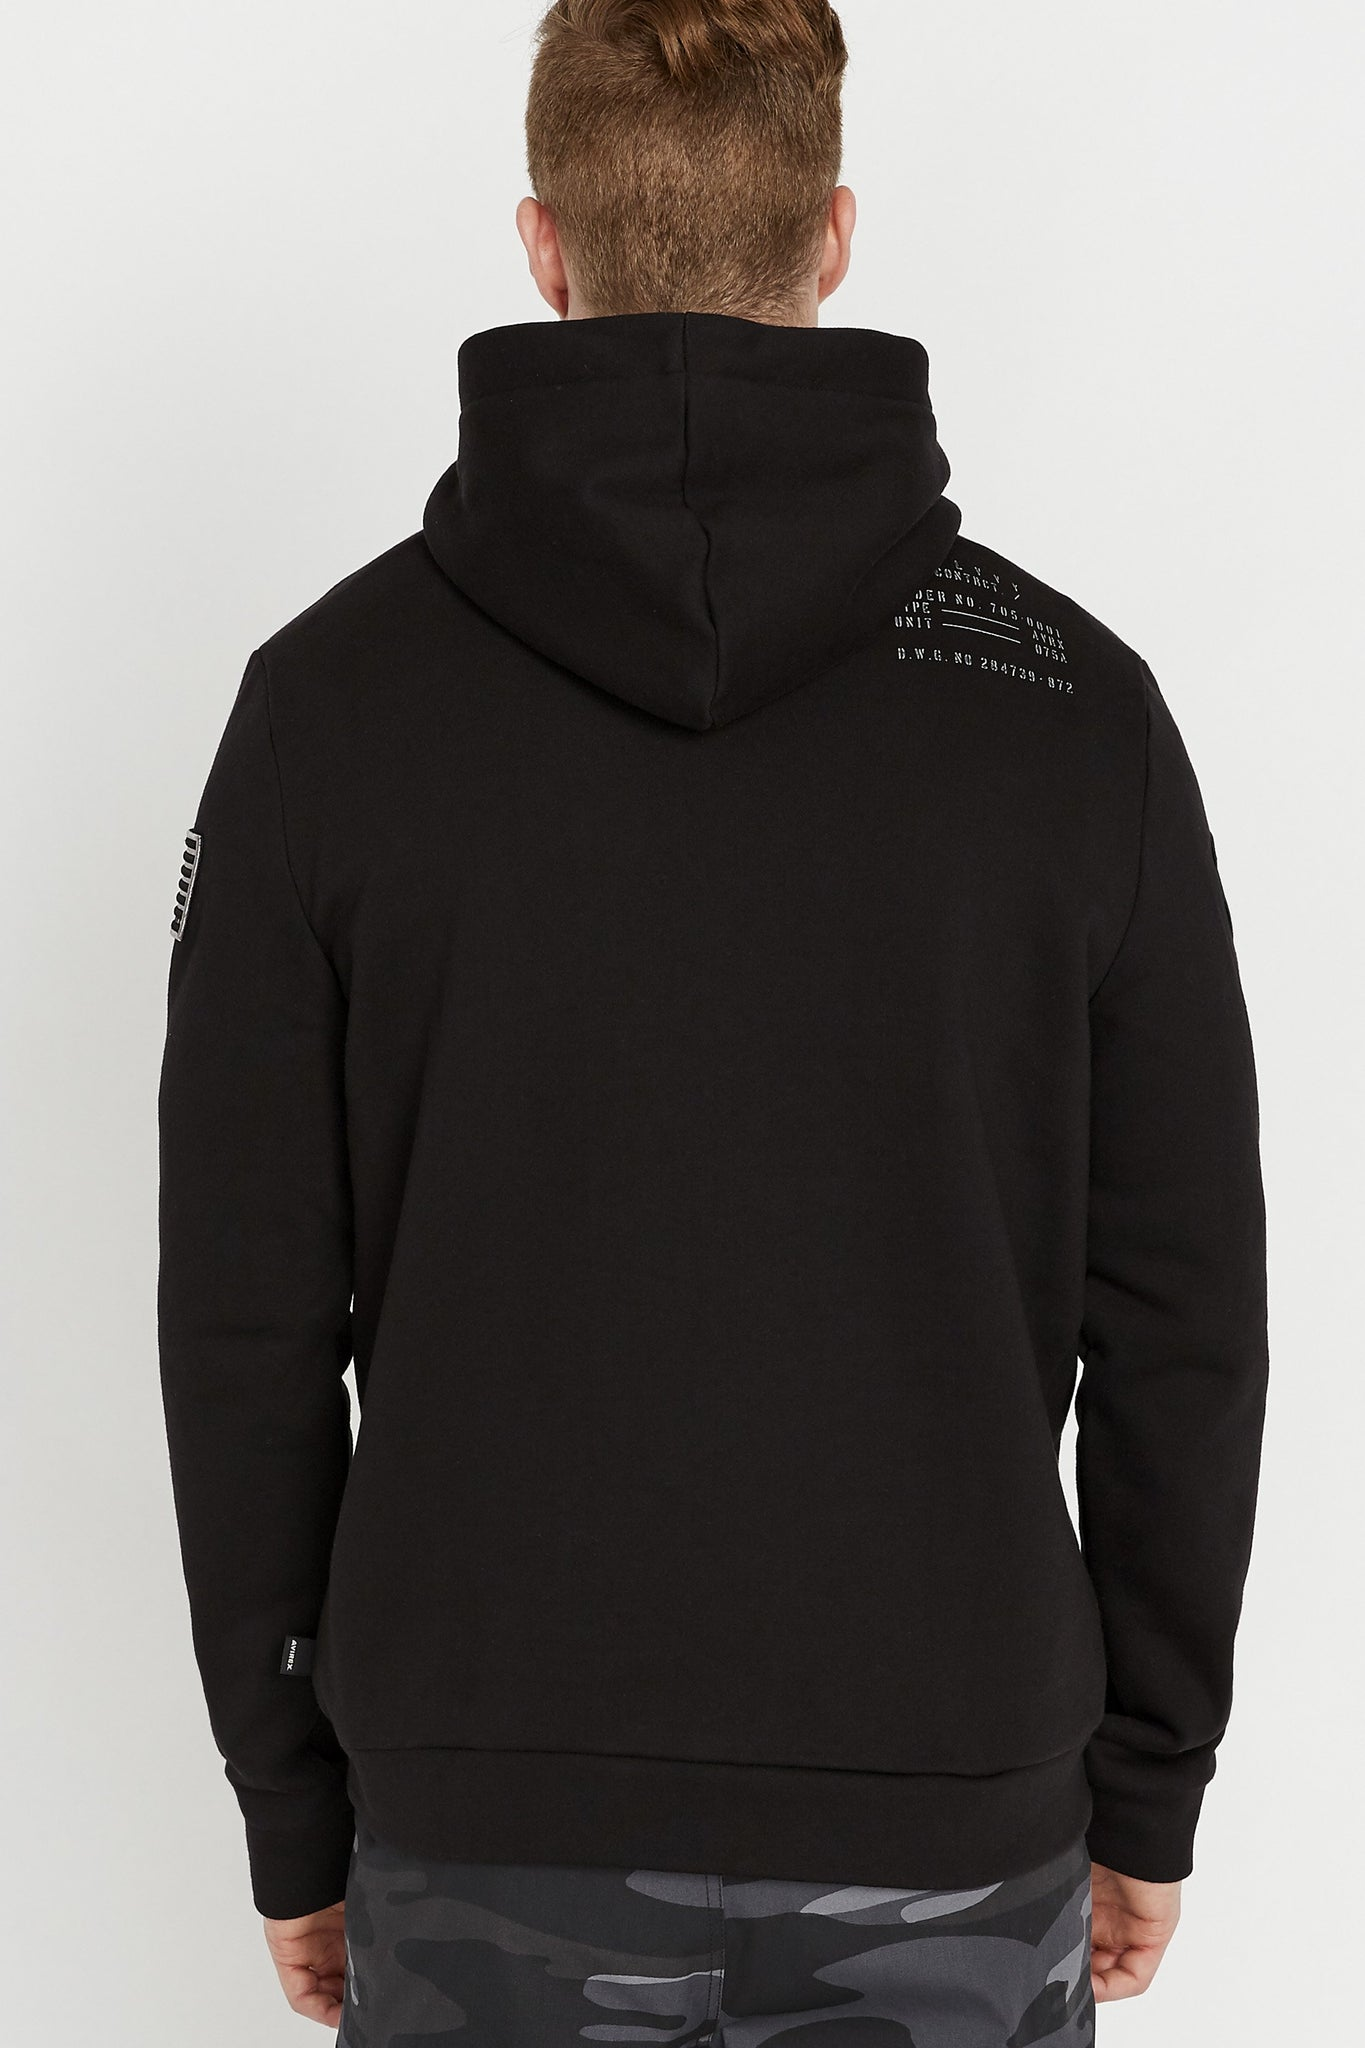 Back view of man wearing a black long sleeve hoodie sweatshirt with text print on the back shoulder